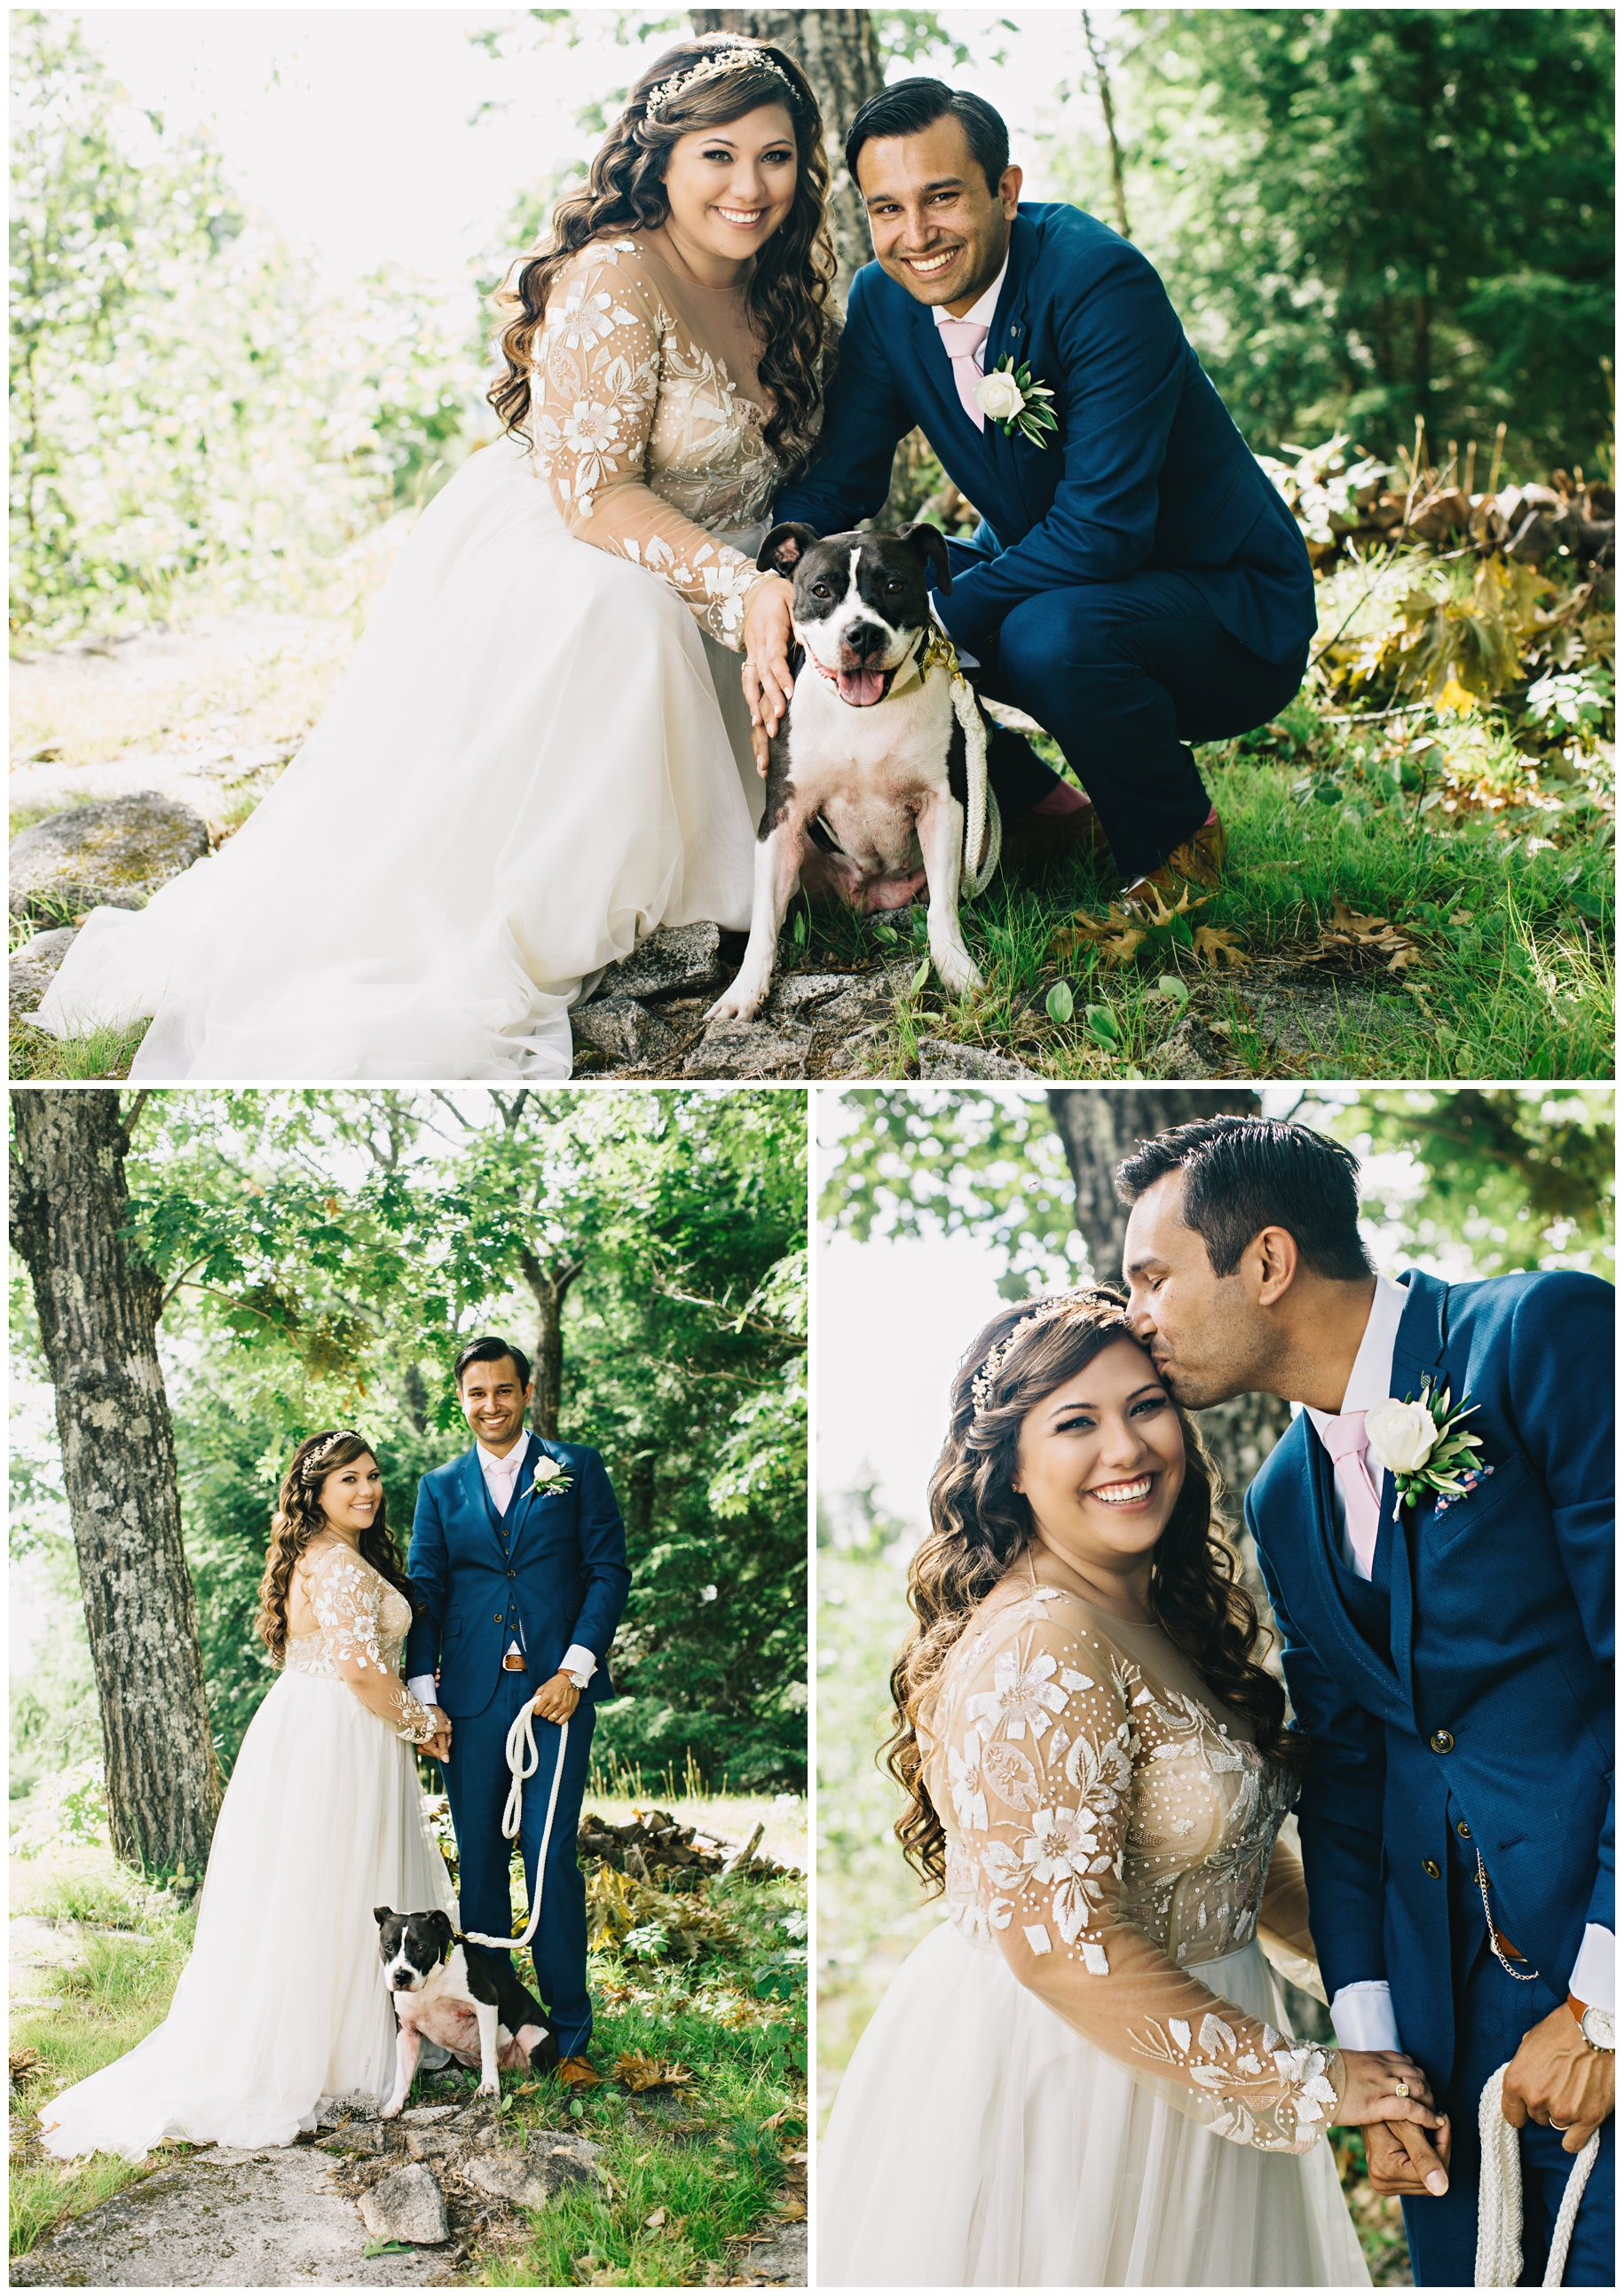 maineweddingphotographer_graniteridge_norway-057